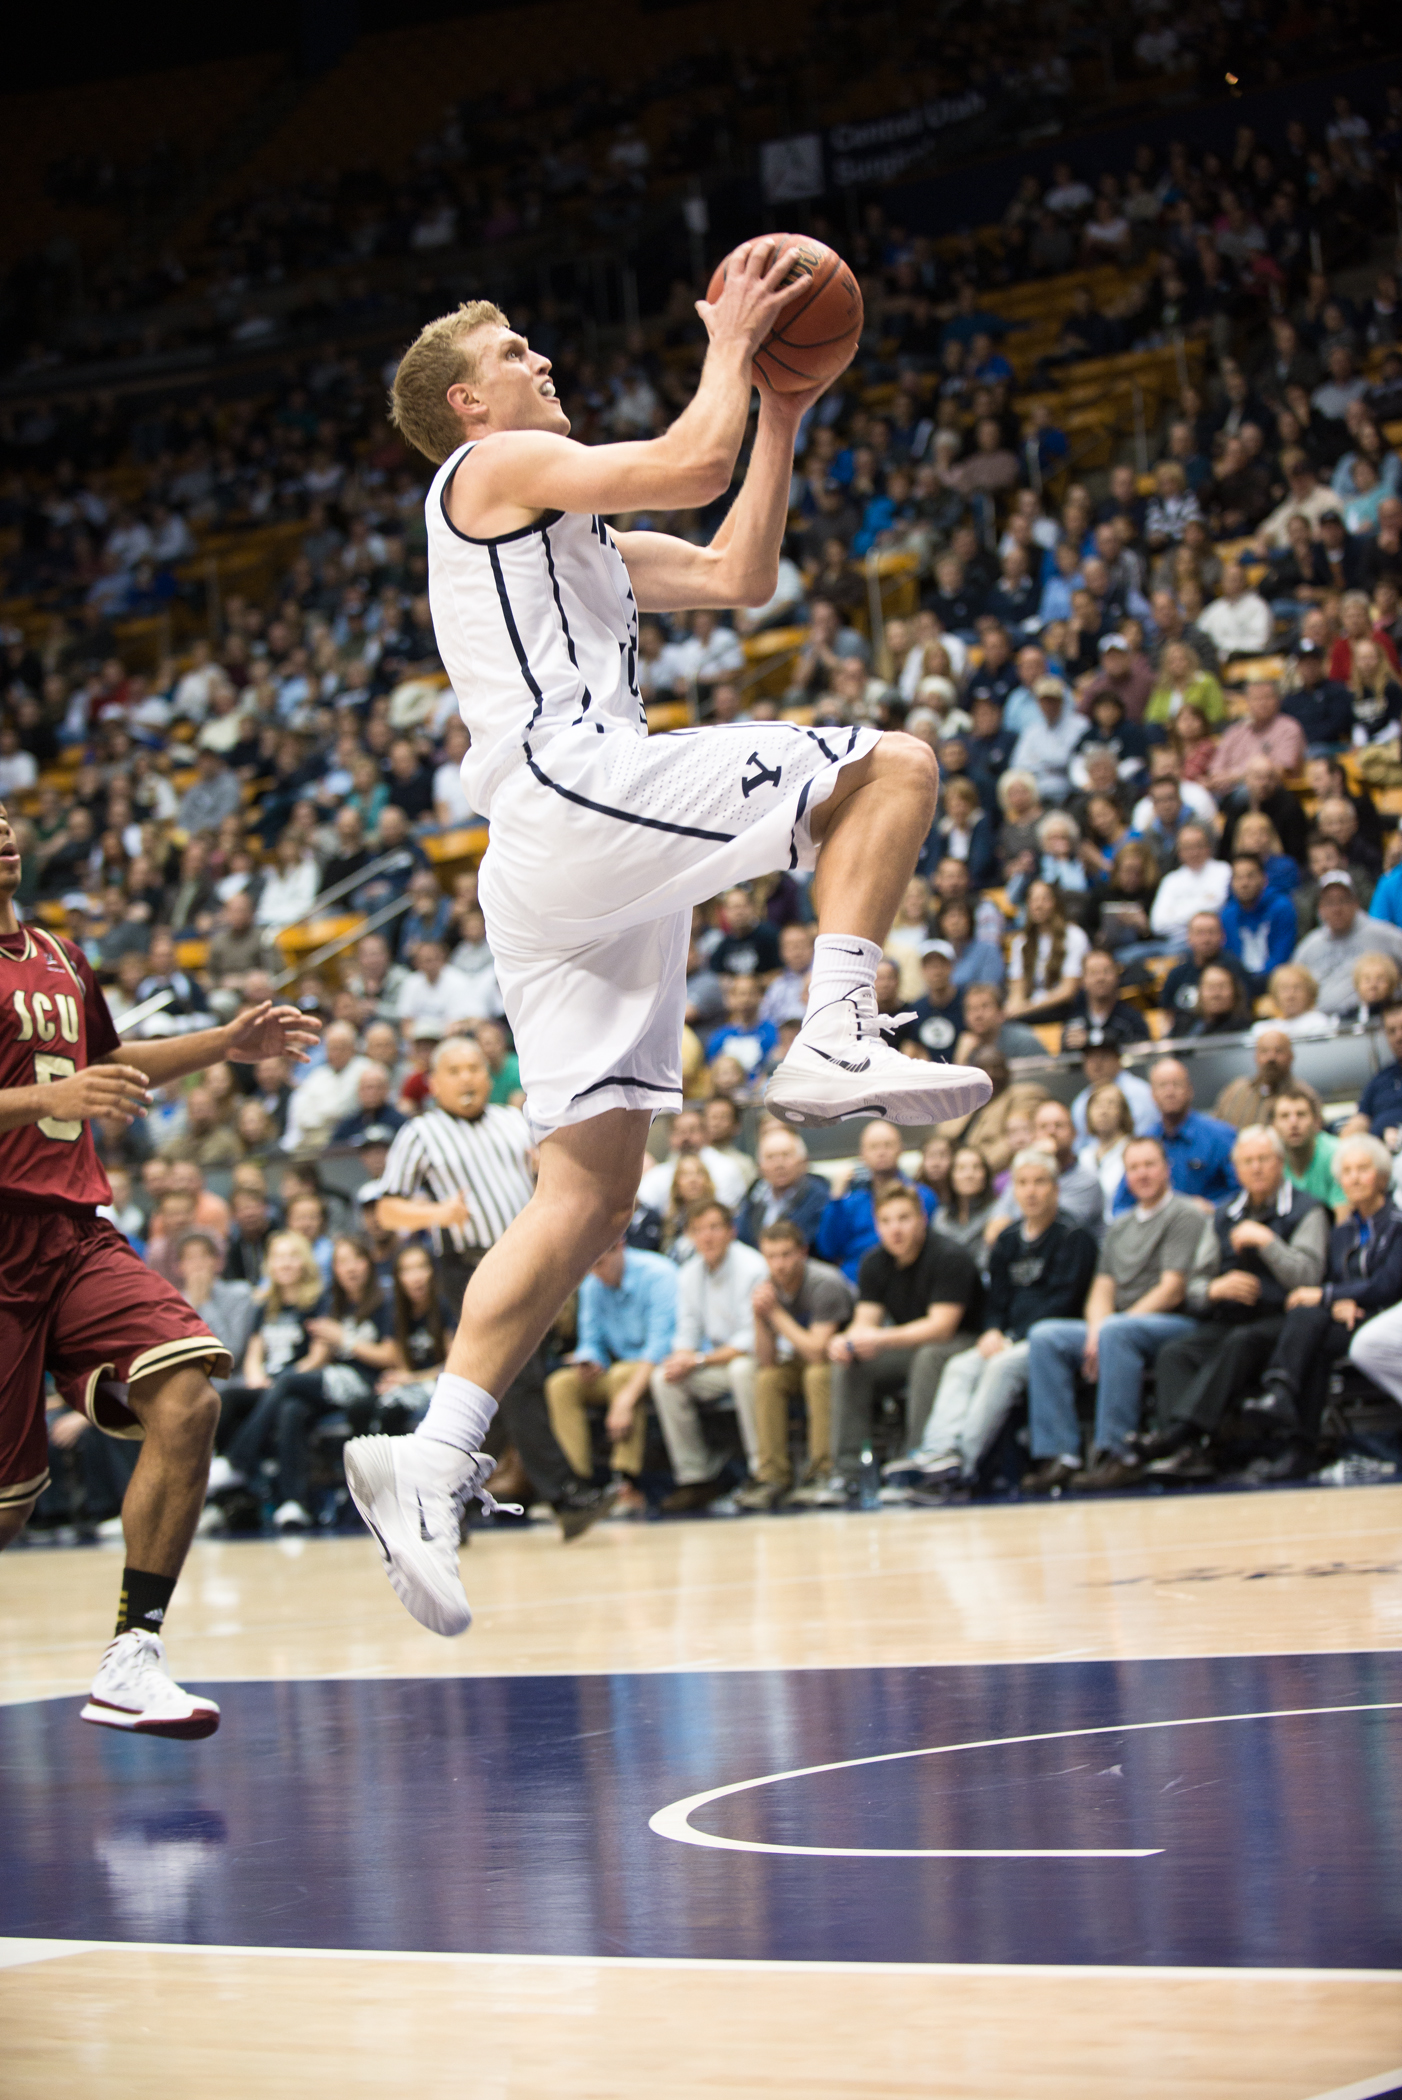 BYU to rematch Oregon in first round of NCAA Tournament ...